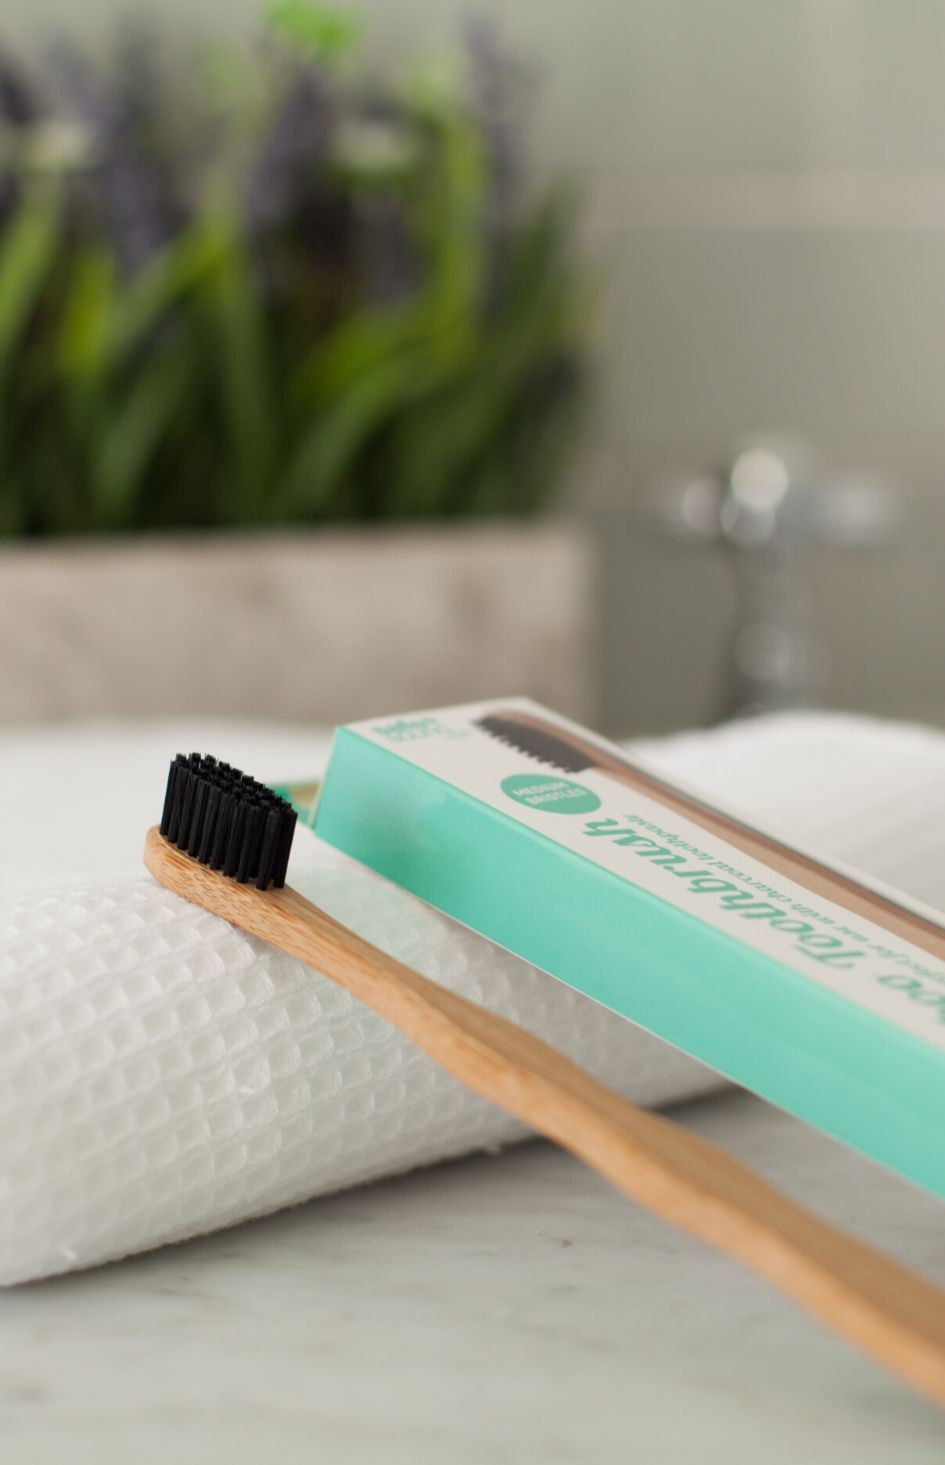 Plastic free bamboo toothbrush by Safe+Sound Health